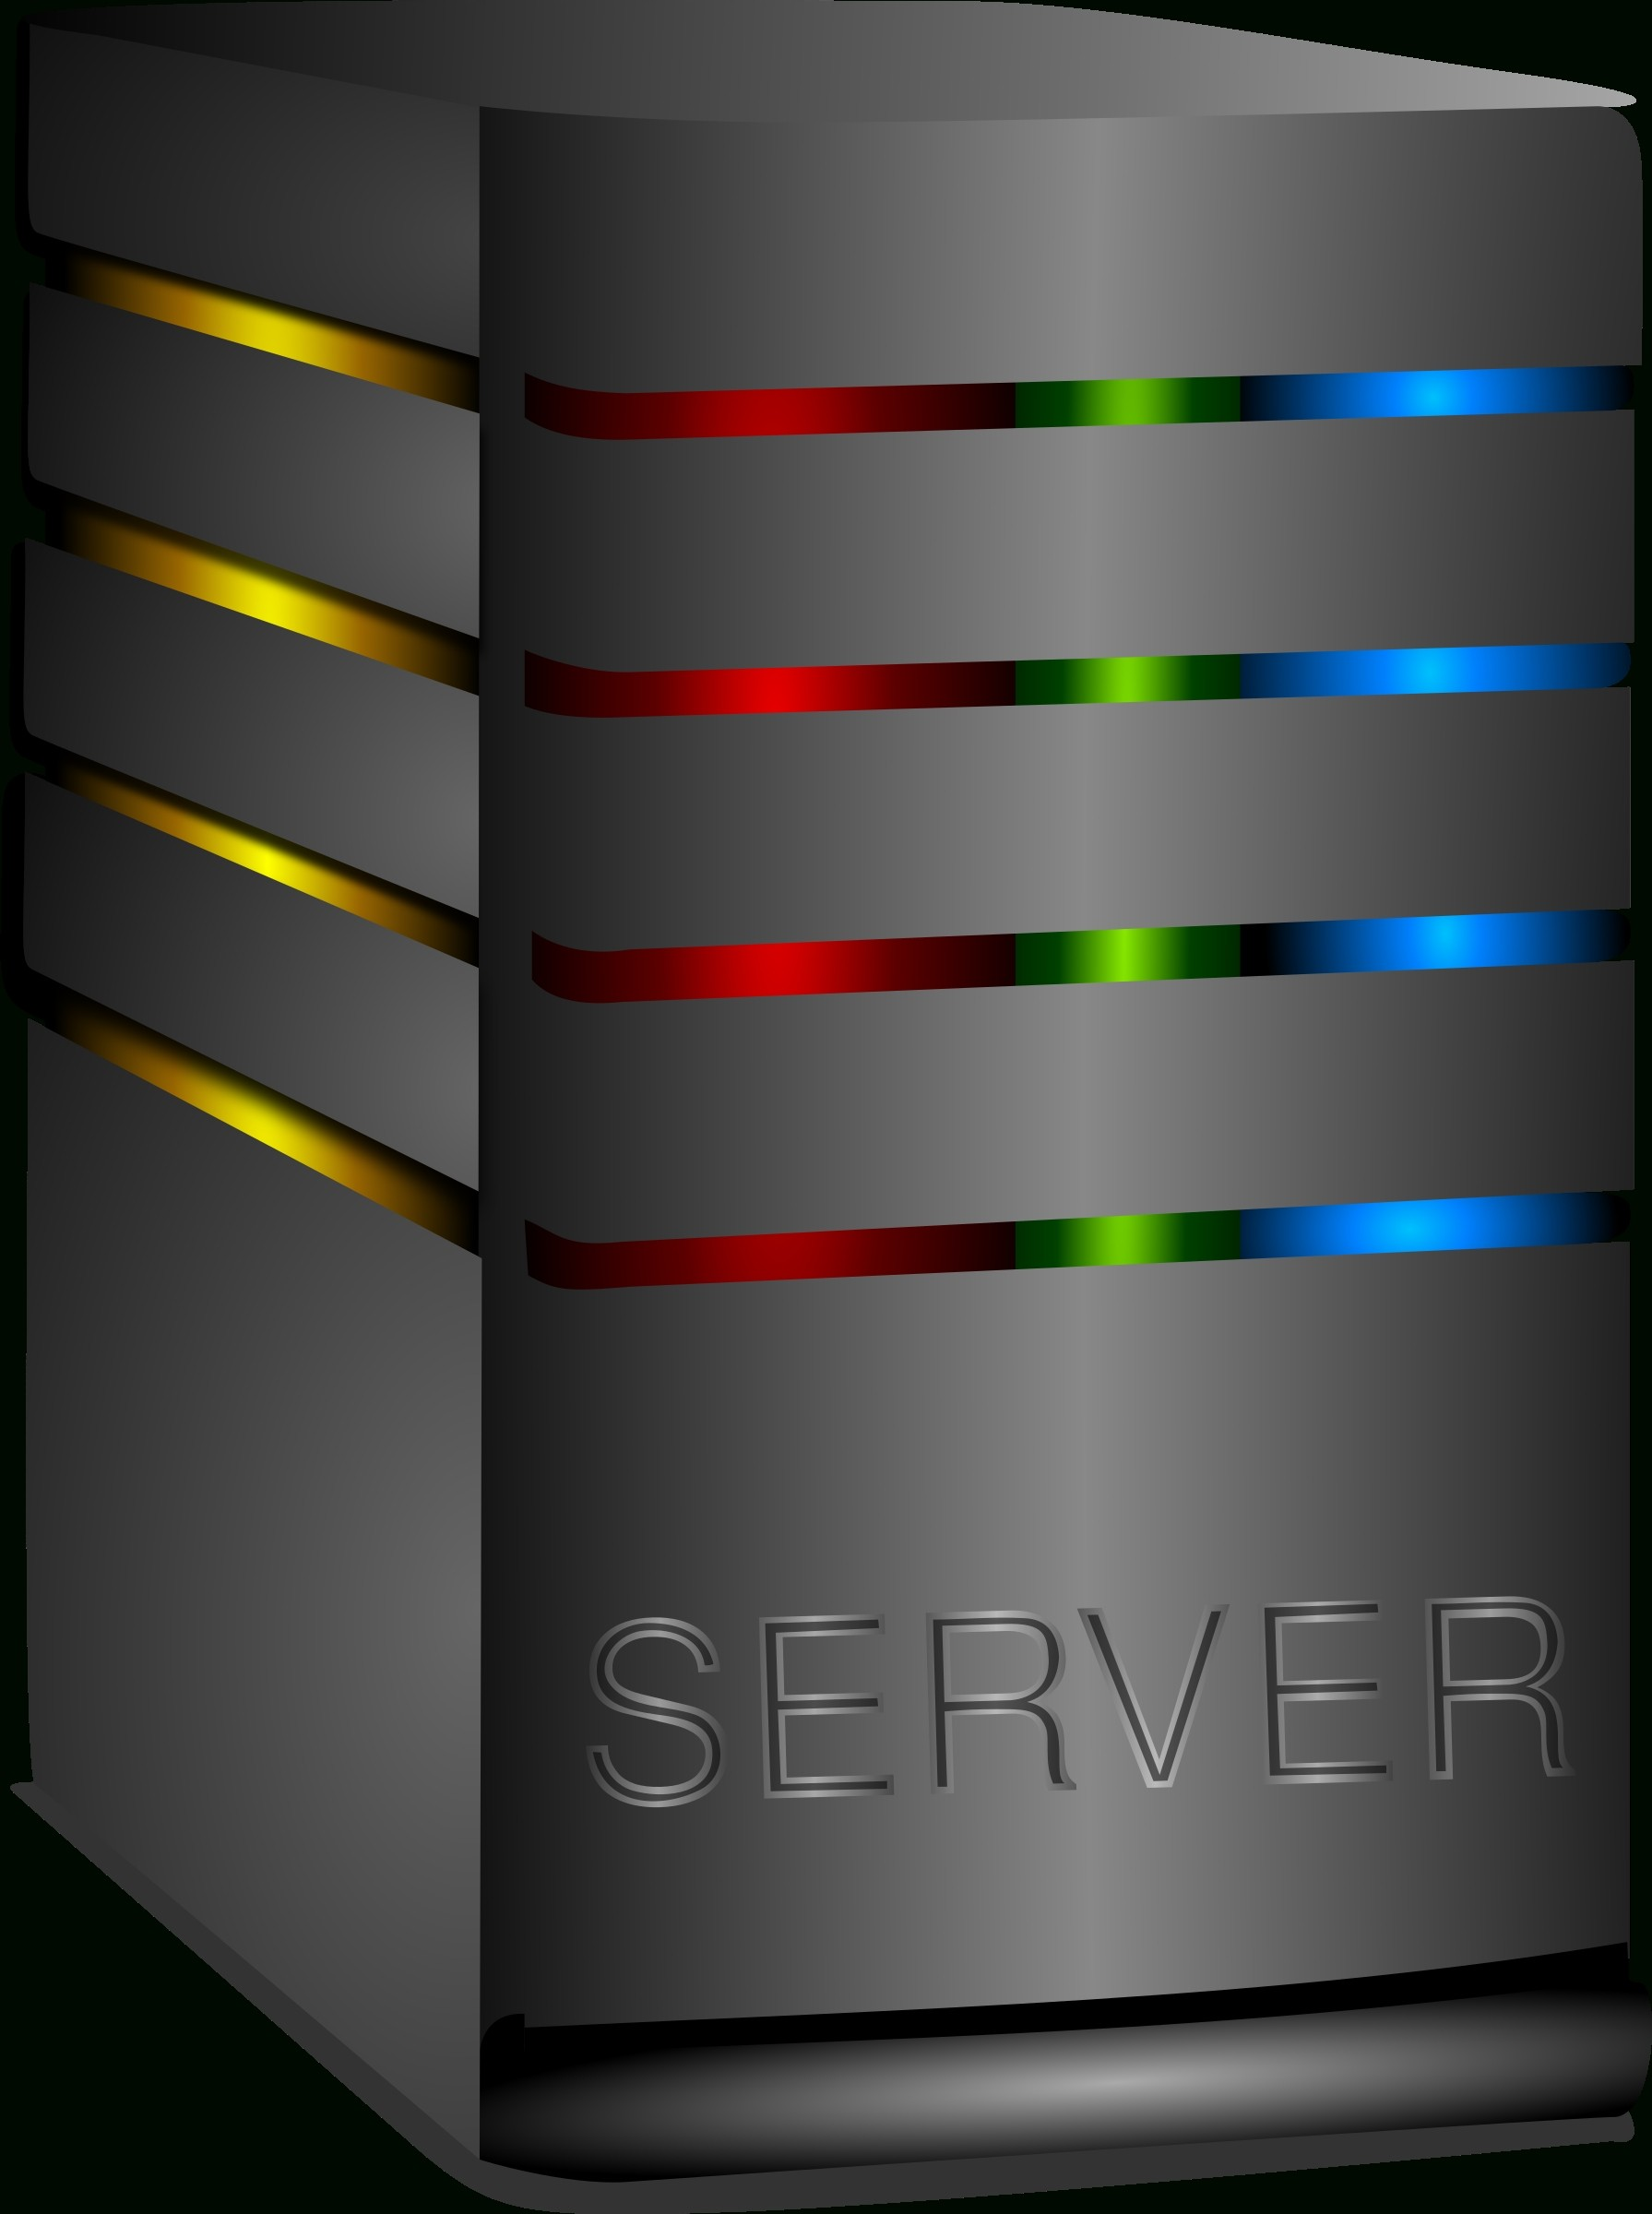 Server Clipart For Powerpoint New beautiful computer server.